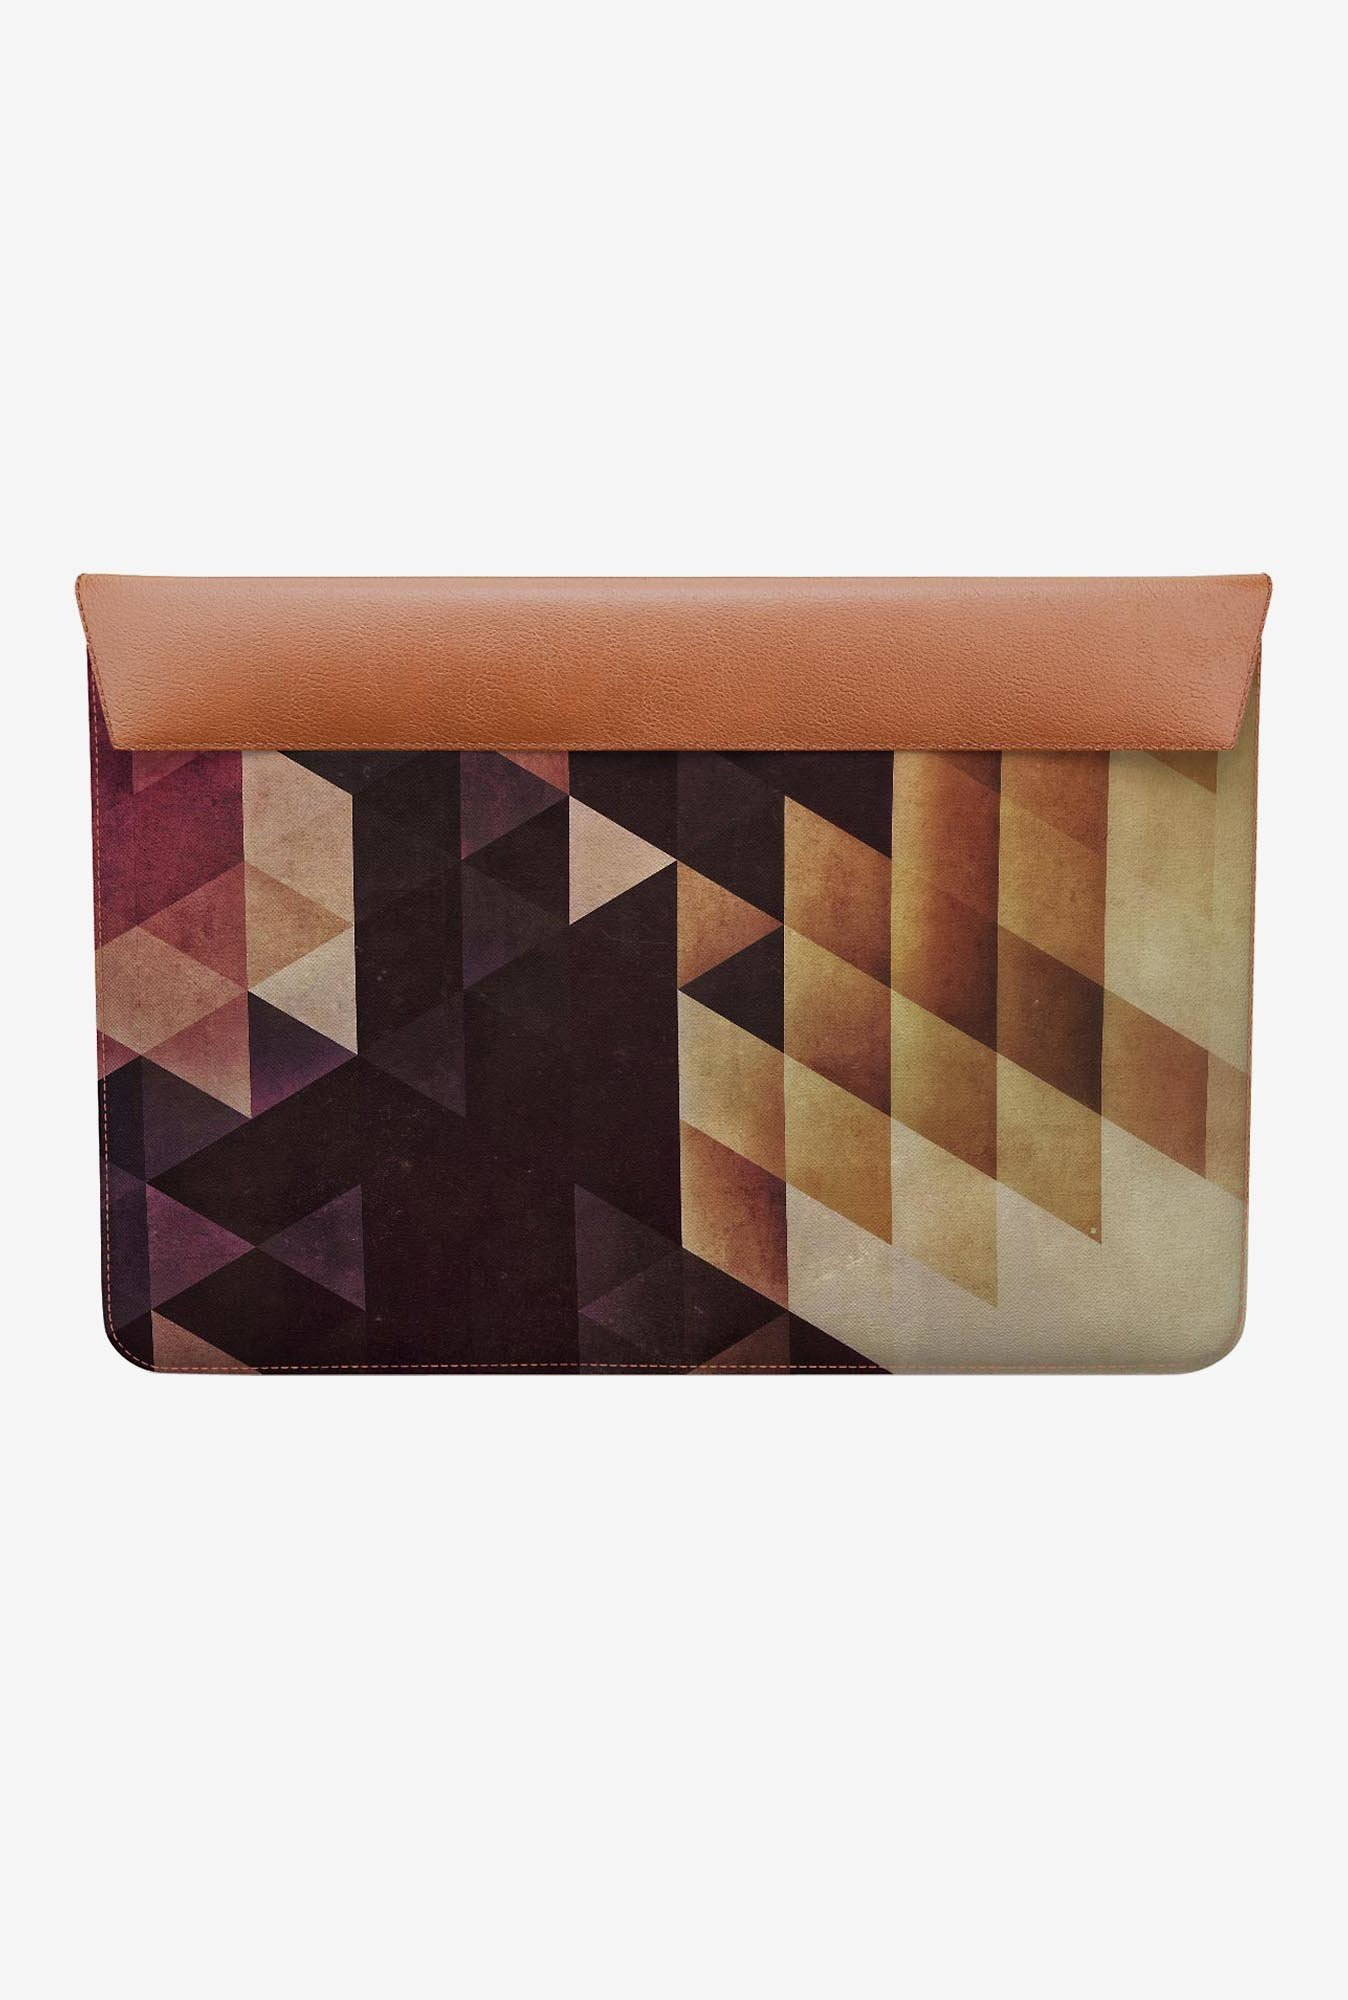 DailyObjects t tyxxnyyk MacBook Air 11 Envelope Sleeve